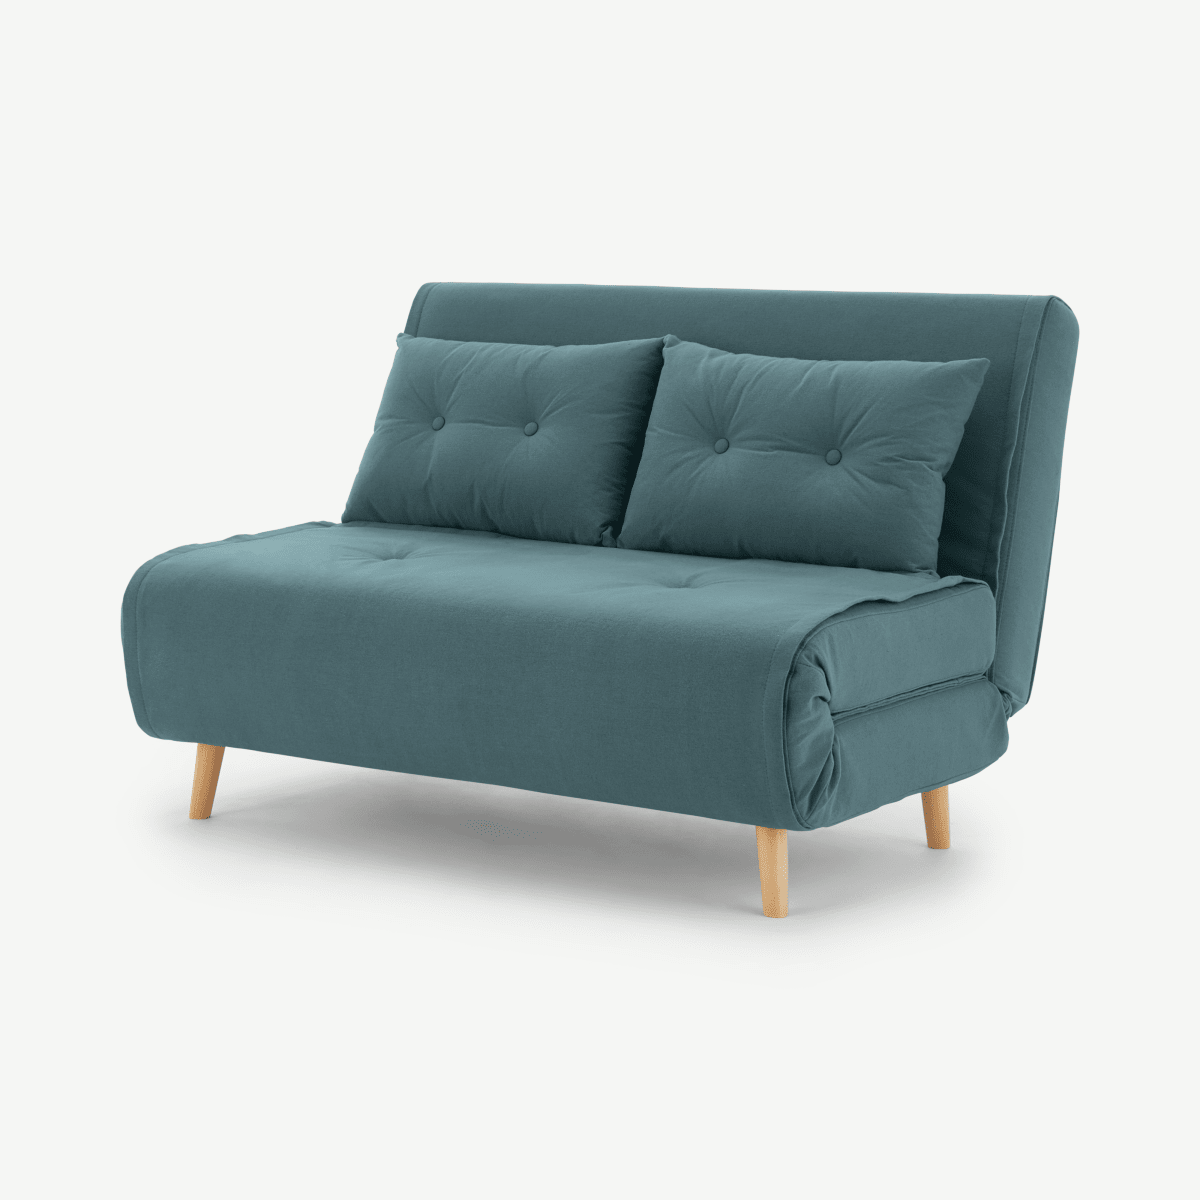 Haru Small Sofa bed, Sherbet Blue